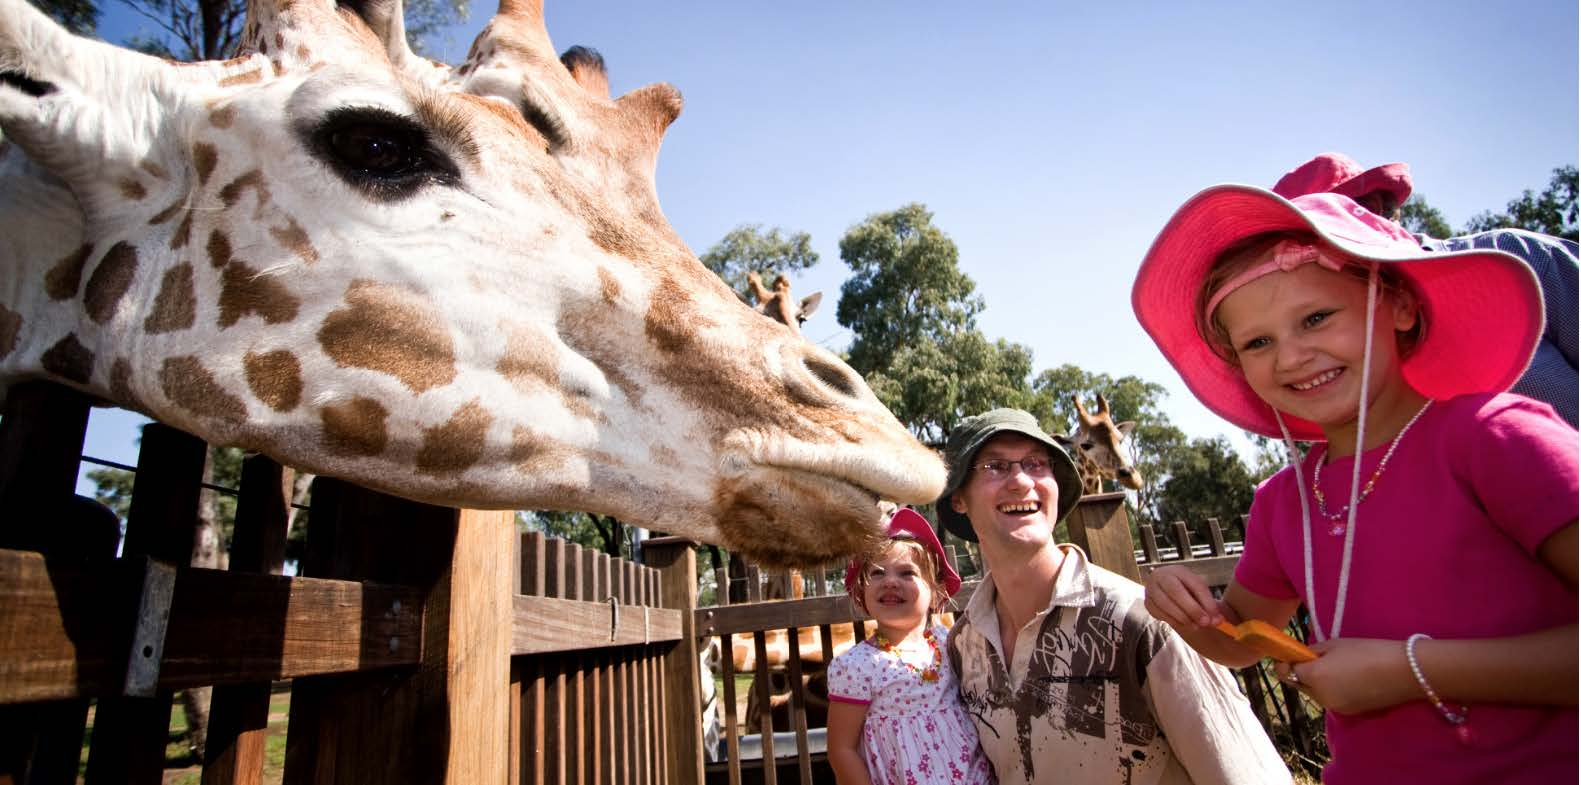 FAMILY FLY, STAY, ZOO - Quality Inn Dubbo 2 nights accommodation (2 adults + 2 children), return airfares, daily breakfast and 2 day Taronga Western Plains Zoo Passex Newcastle or Canberra                               Starting from $454 pp/twin share (adult), $198 (child under 15)★★★★